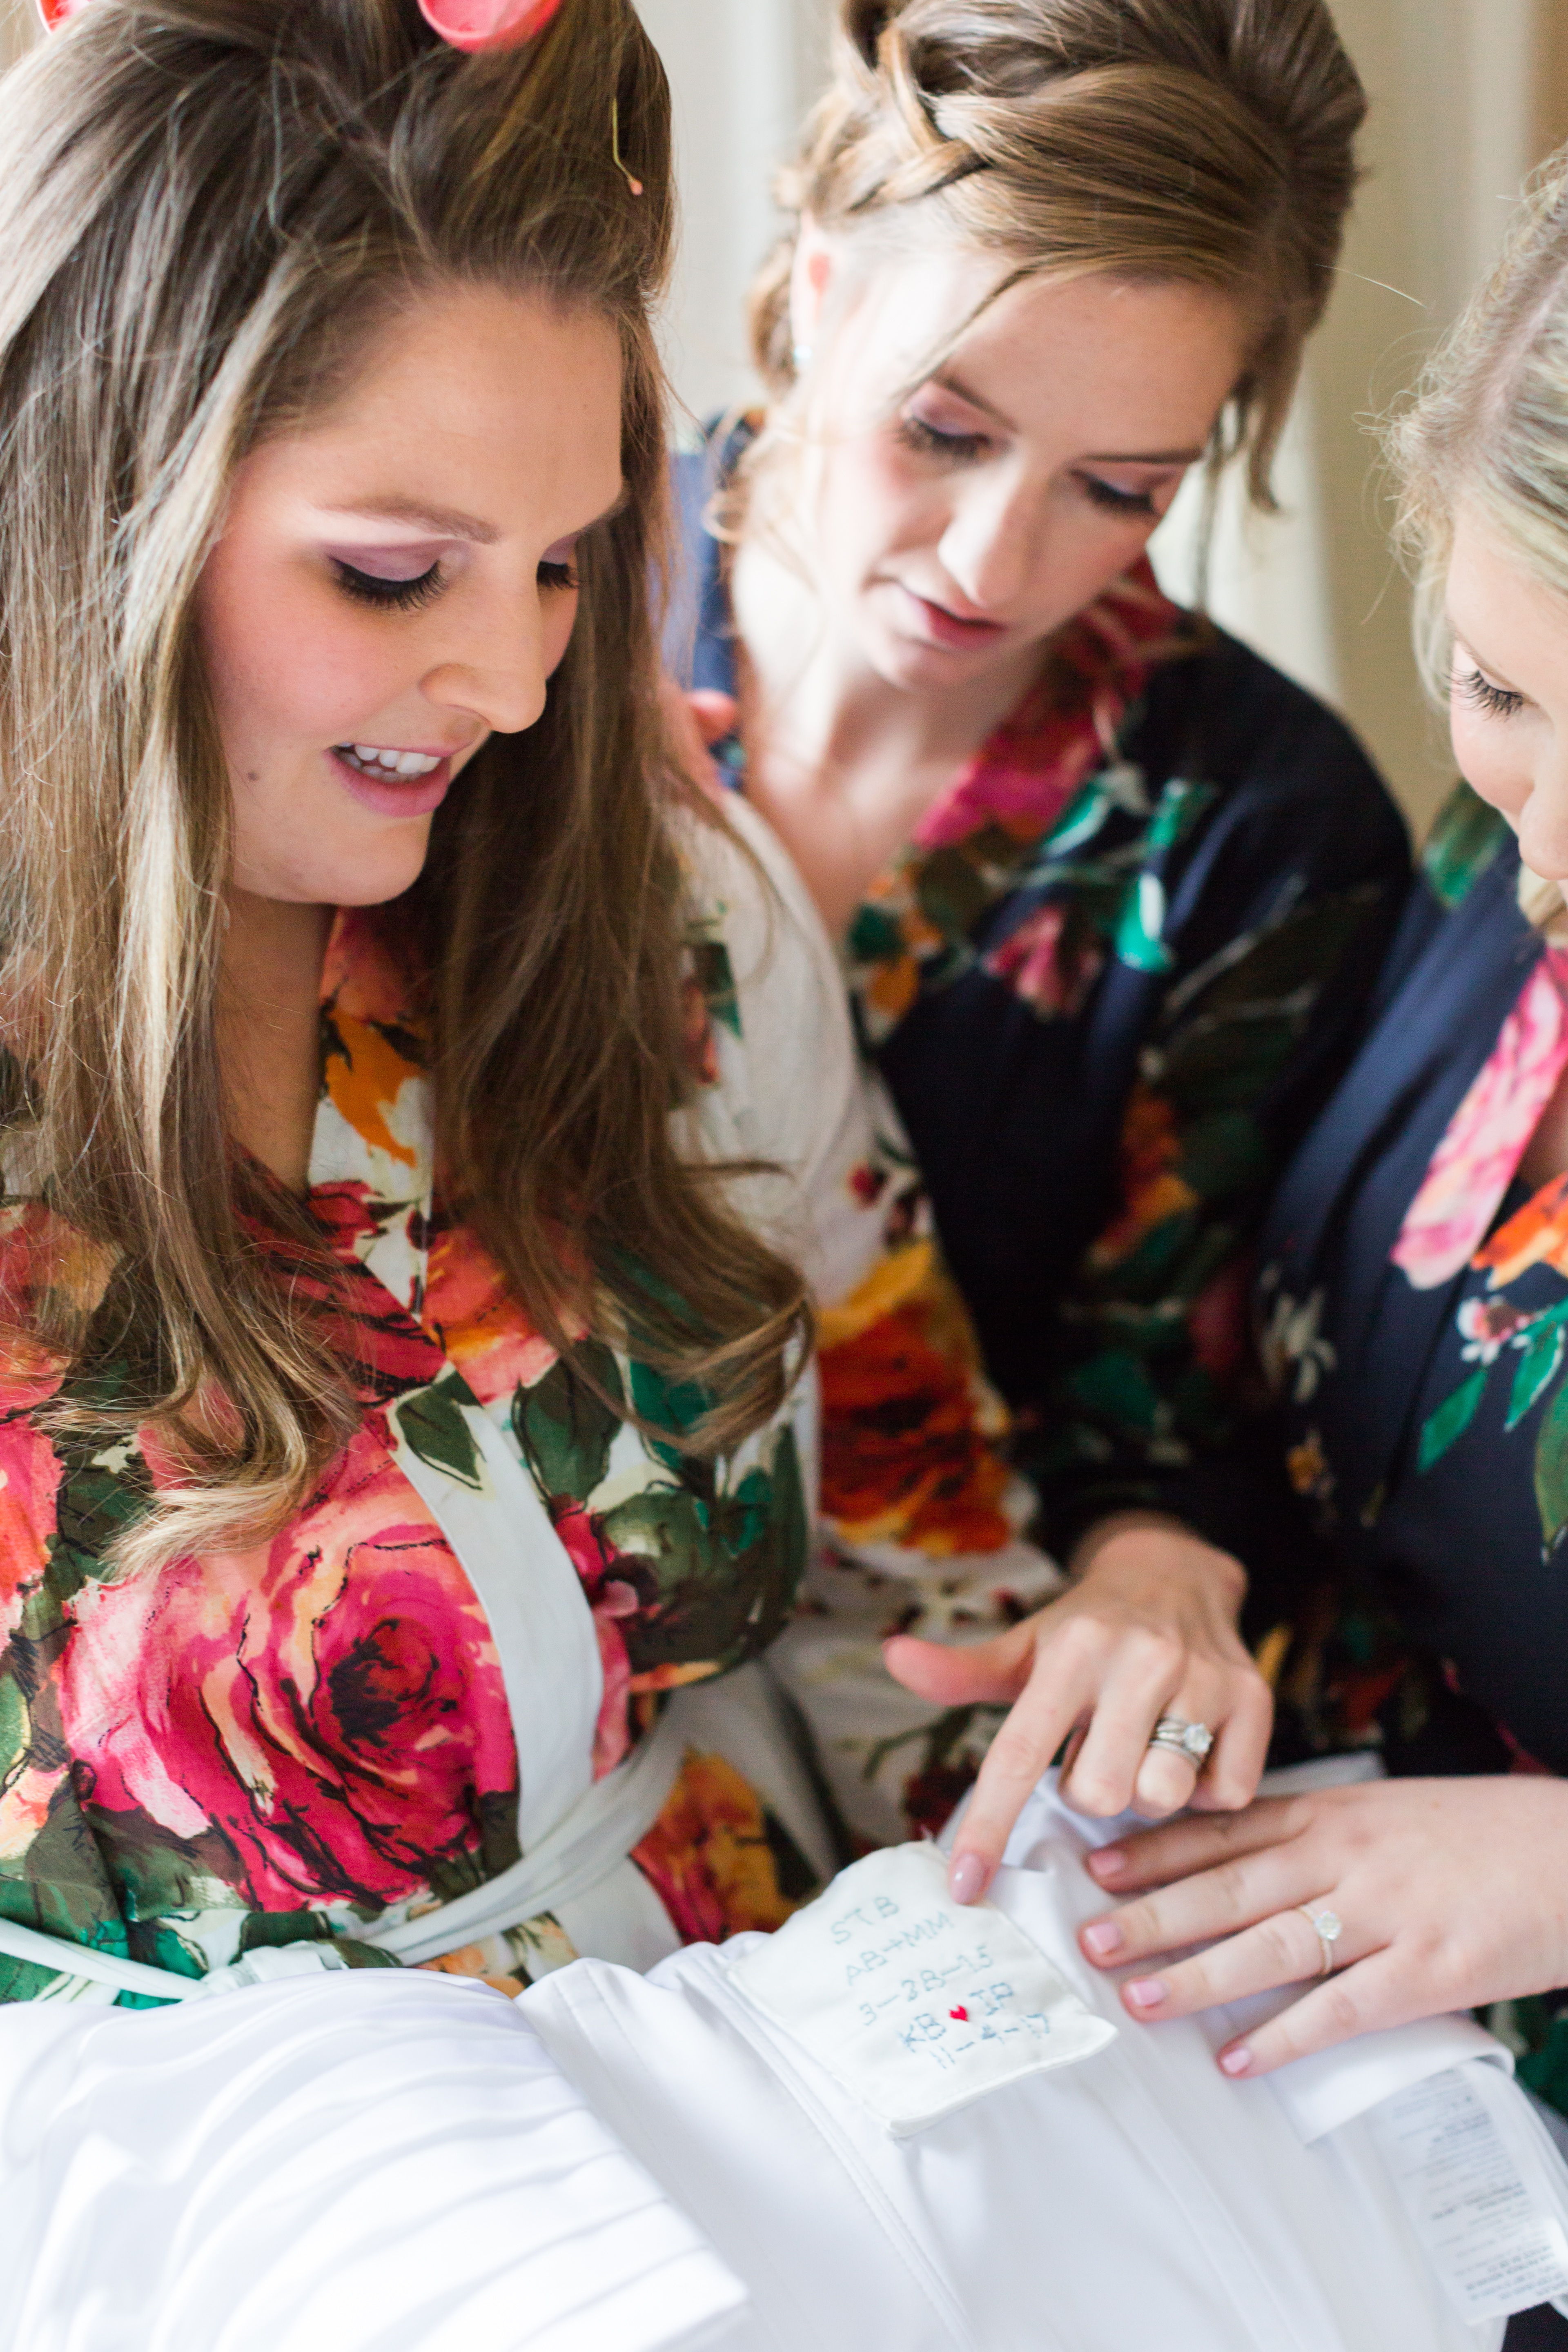 Bridal party getting ready picture matching floral silk robes for a Peninsula Yacht Club wedding